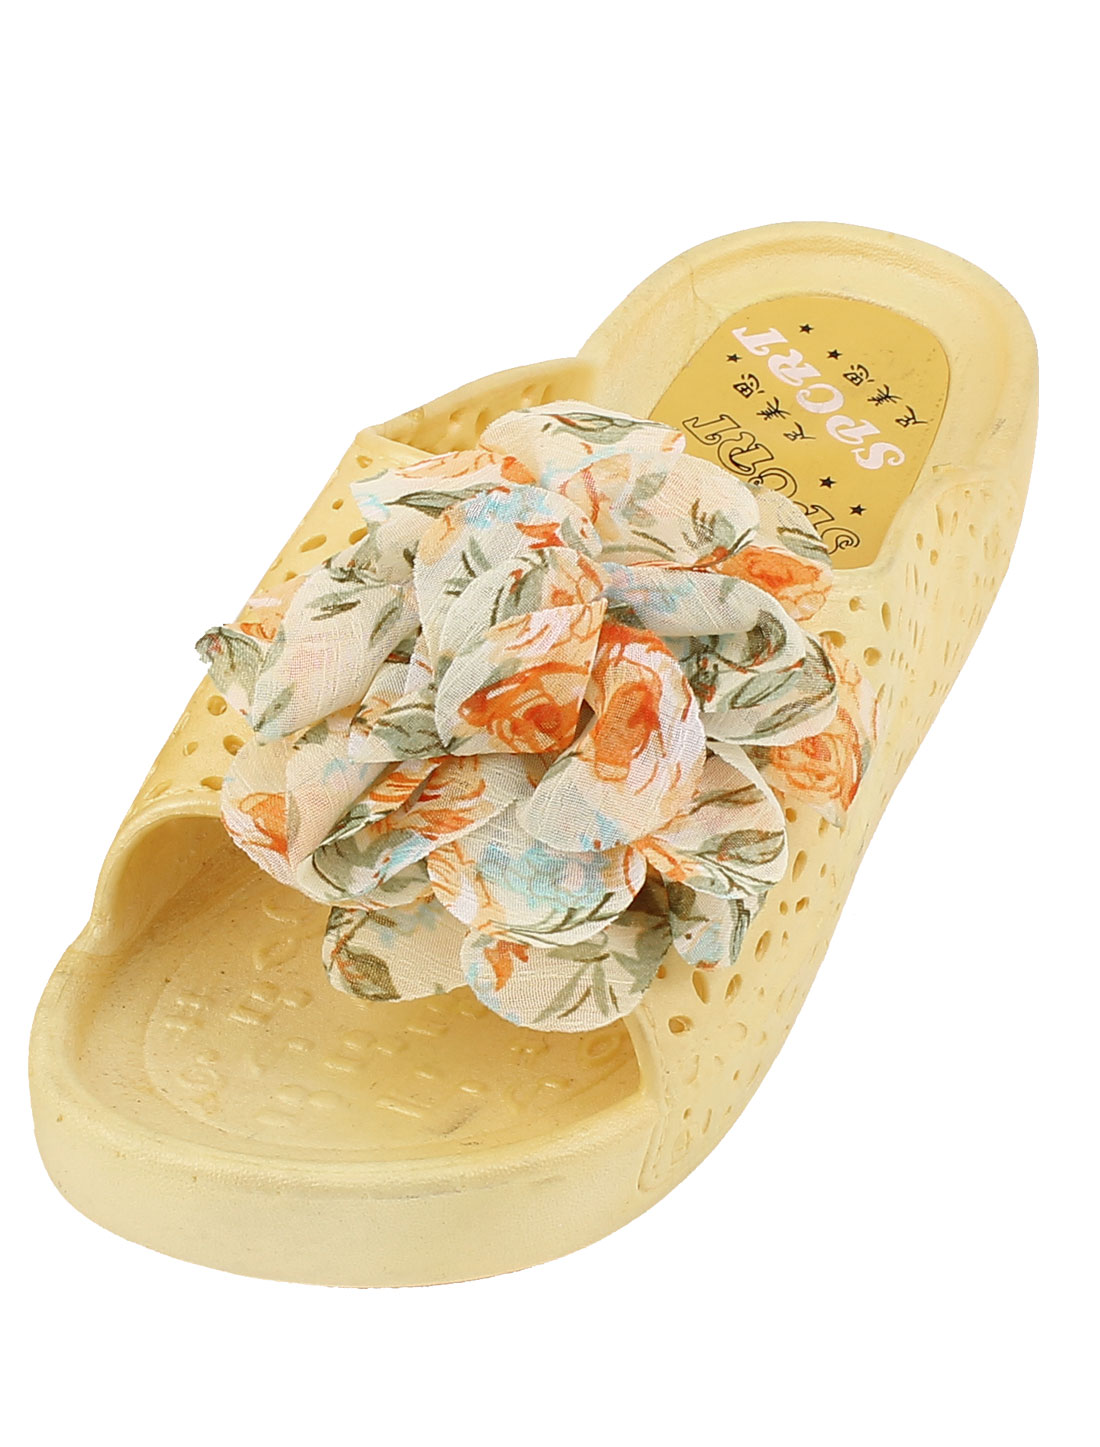 Summer Ladies Plastic Hollow Out Flower Non-skid Slippers Flip Flop Yellow Pair US 7.5